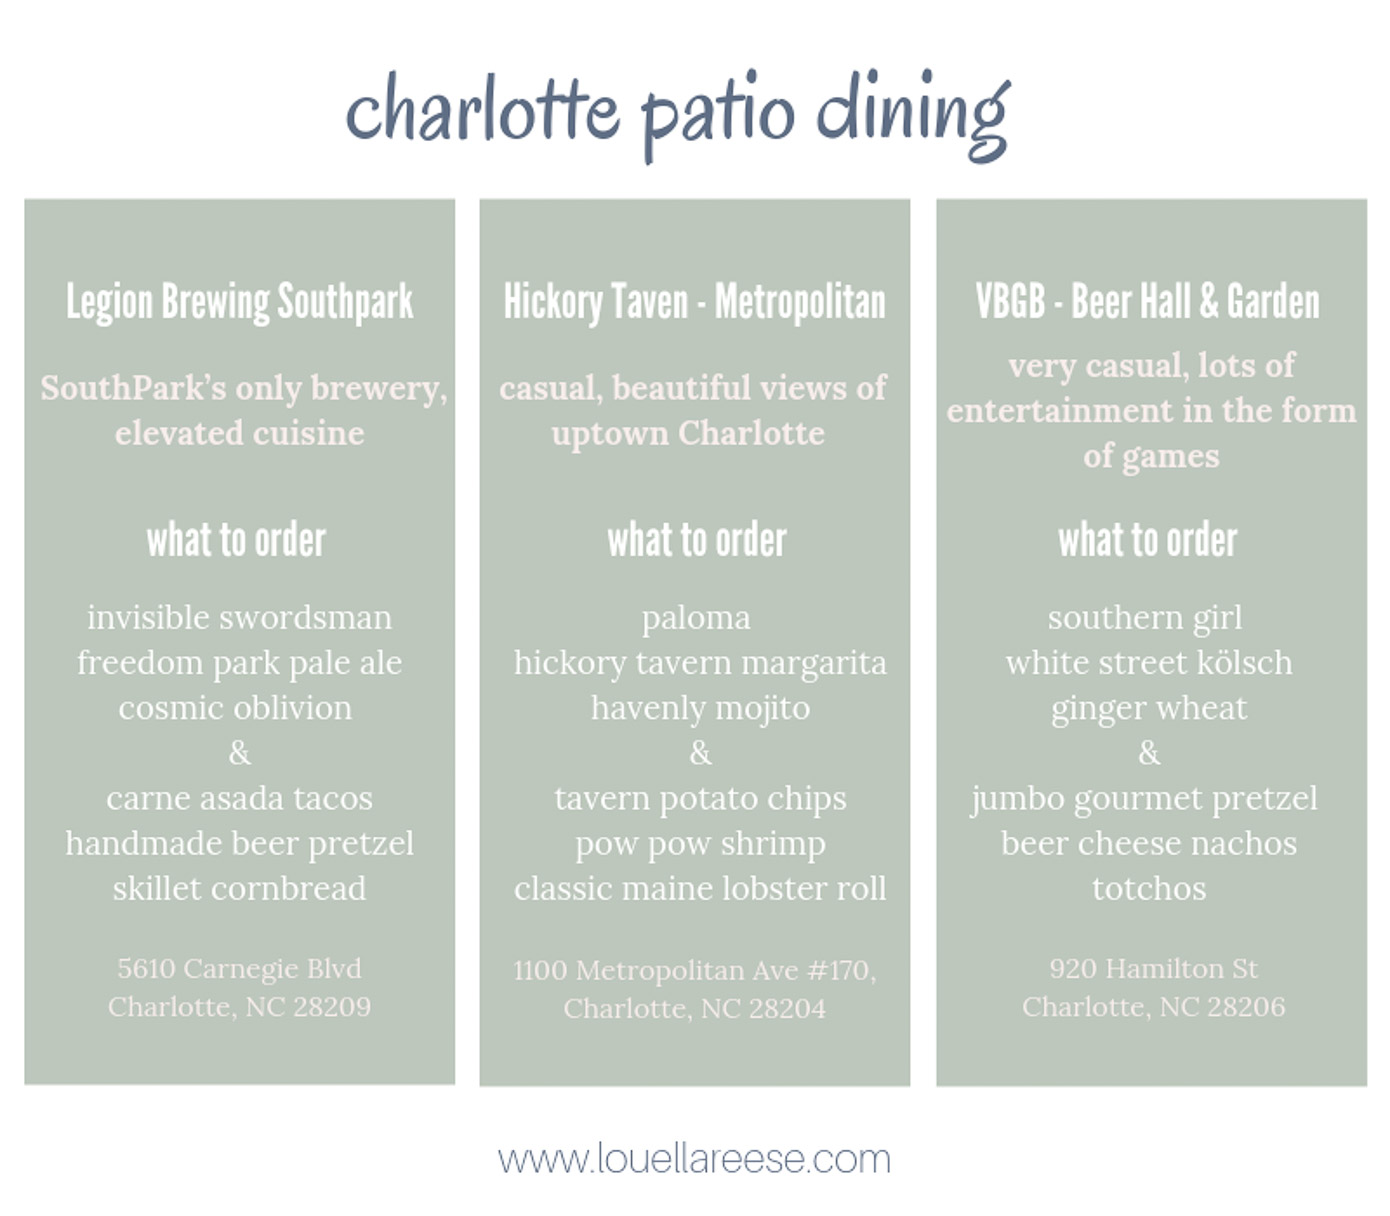 The Best Patio Dining in Charlotte NC | Where to Dine Outside in Charlotte | Louella Reese